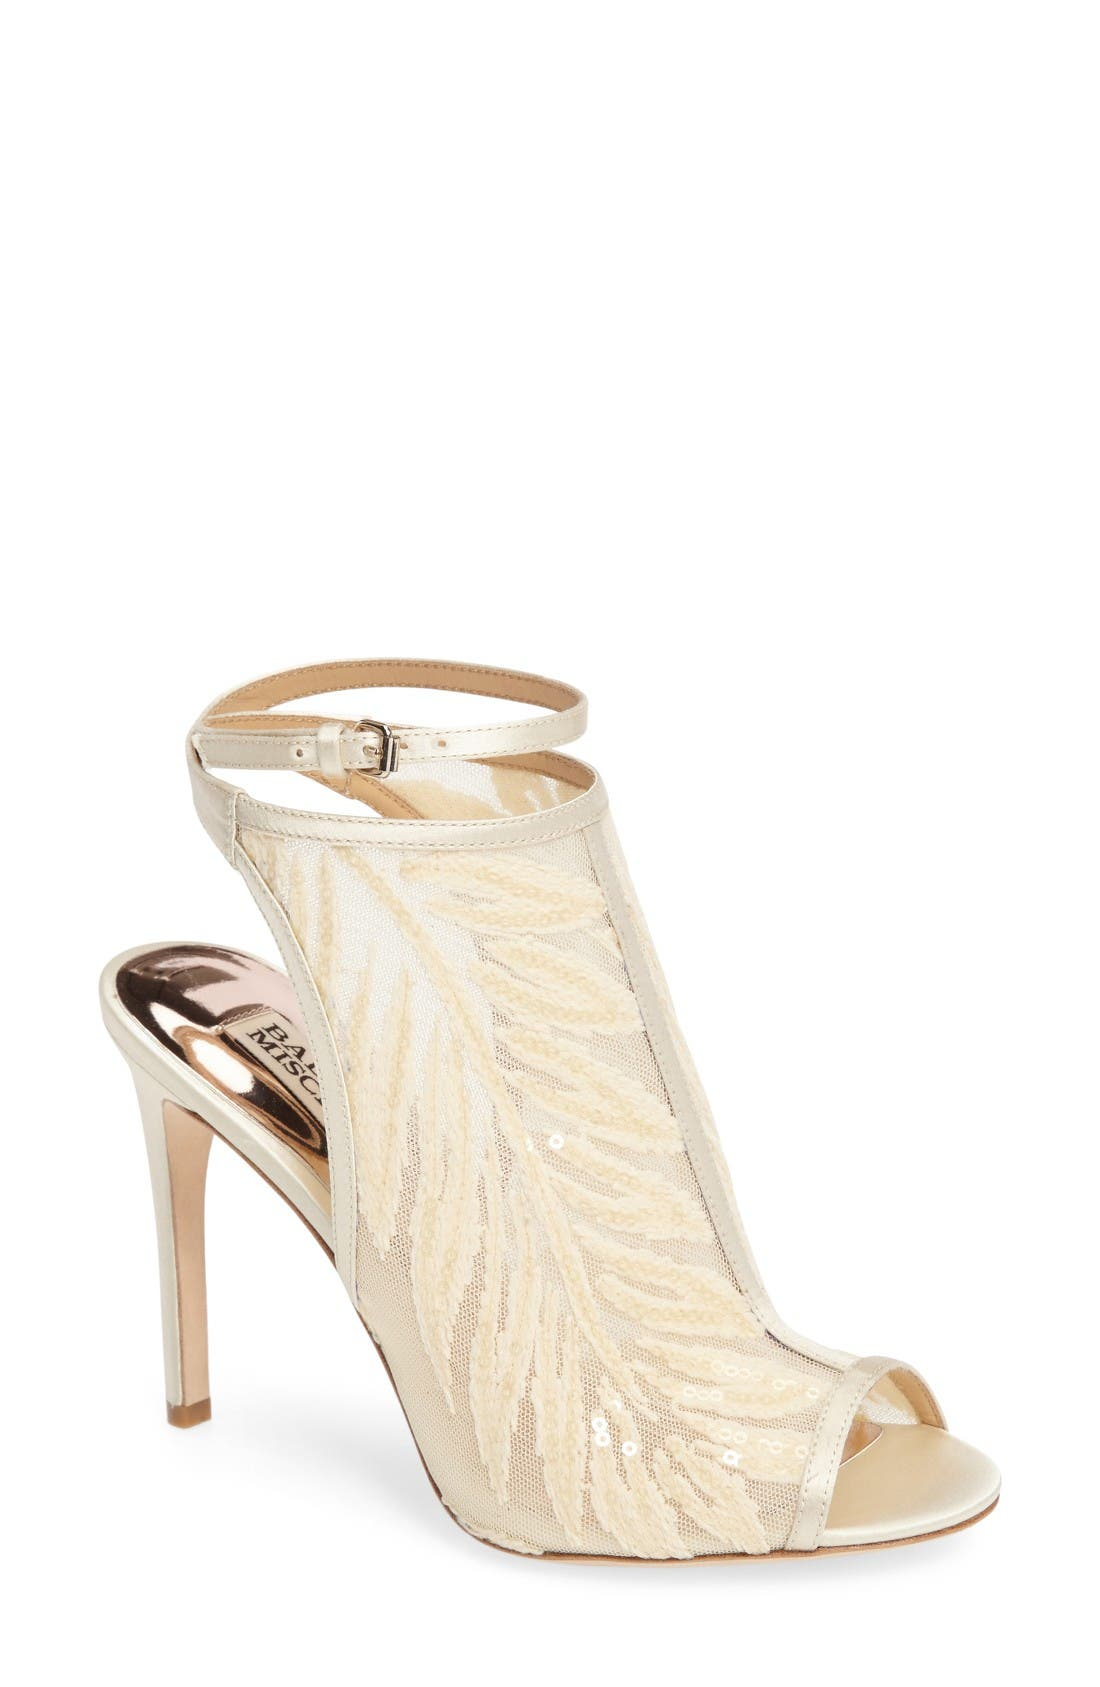 Main Image - Badgley Mischka Blakely Sequin Illusion Sandal (Women)